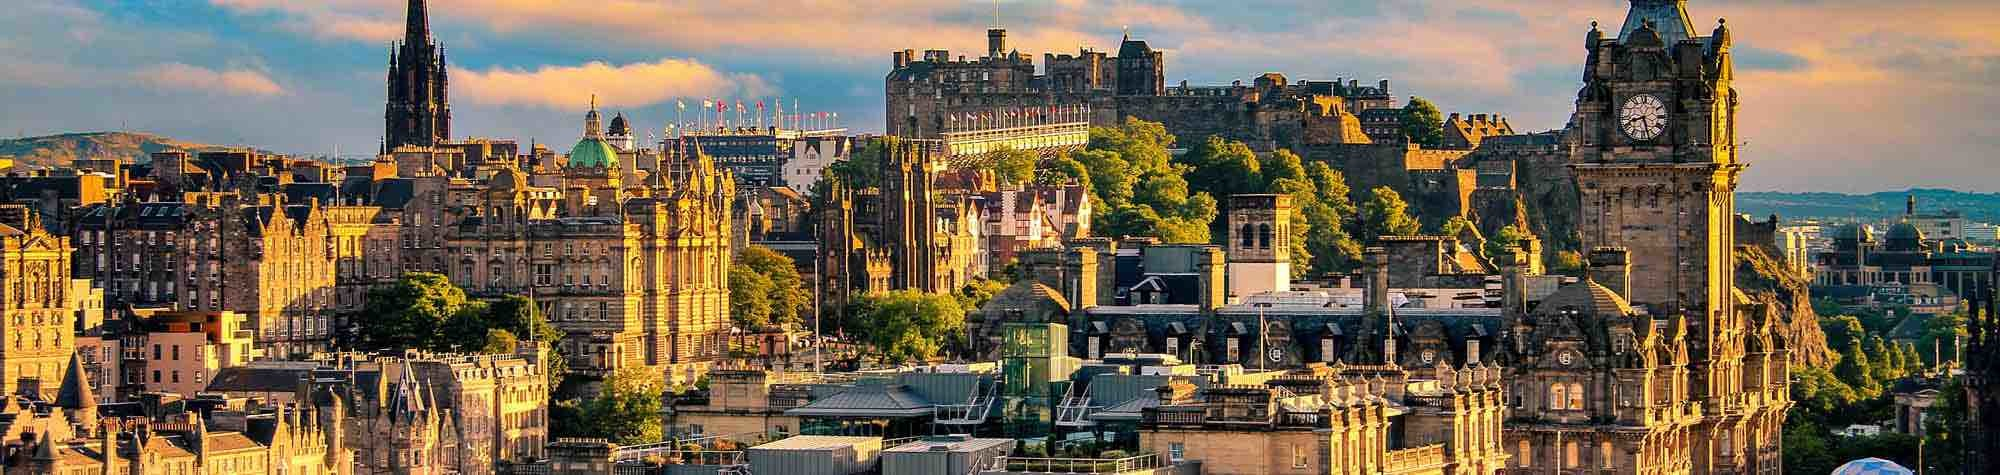 Search Consultancy Edinburgh City Centre Image.